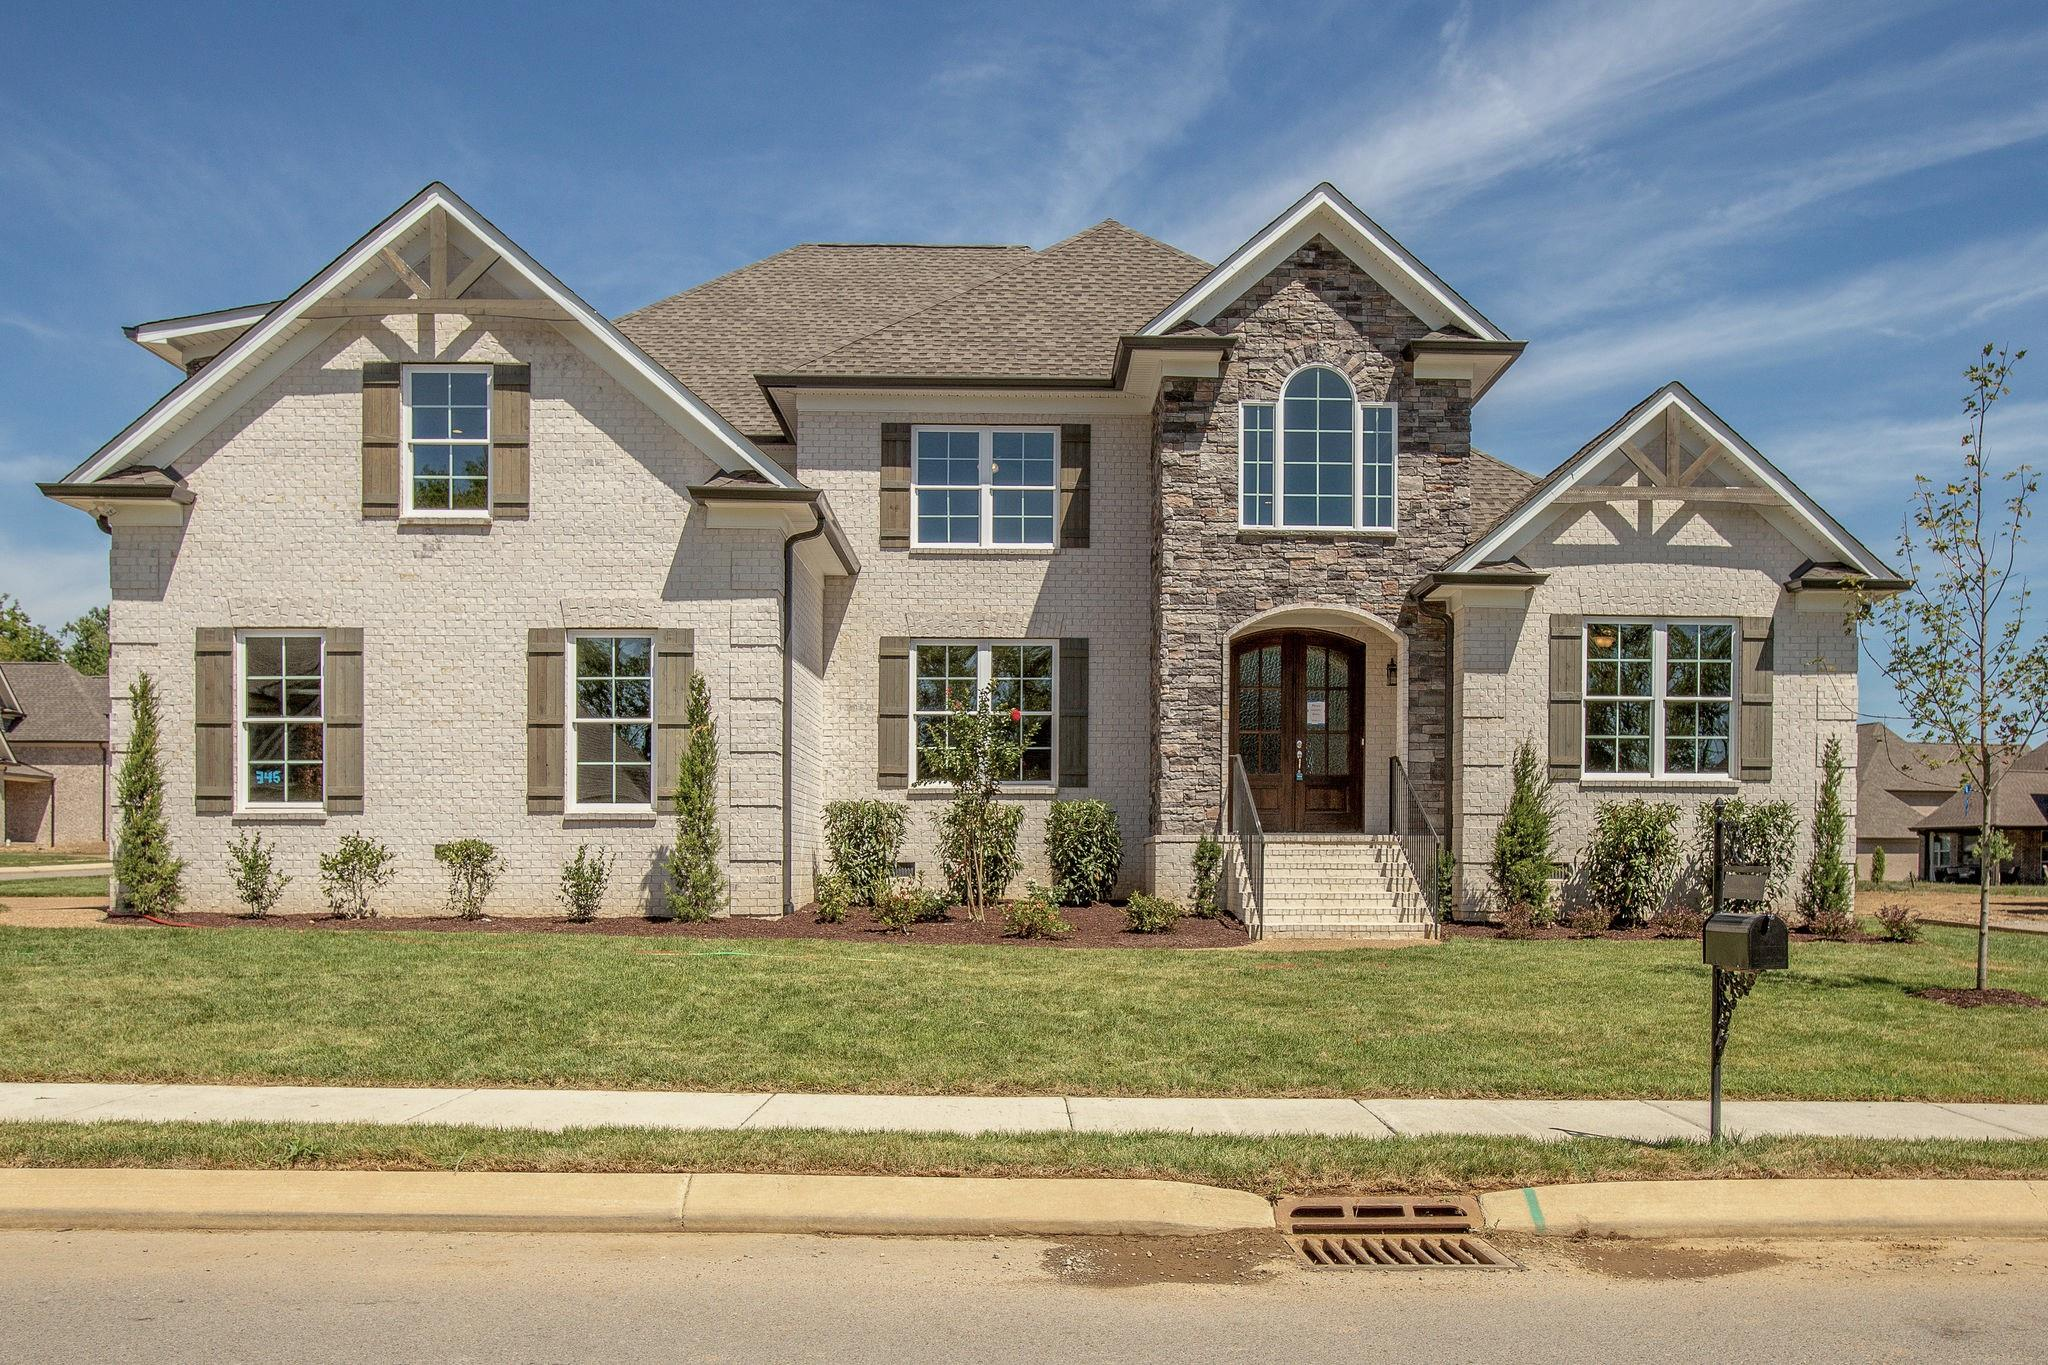 2964 Stewart Campbell Pt (345), Spring Hill, Tennessee